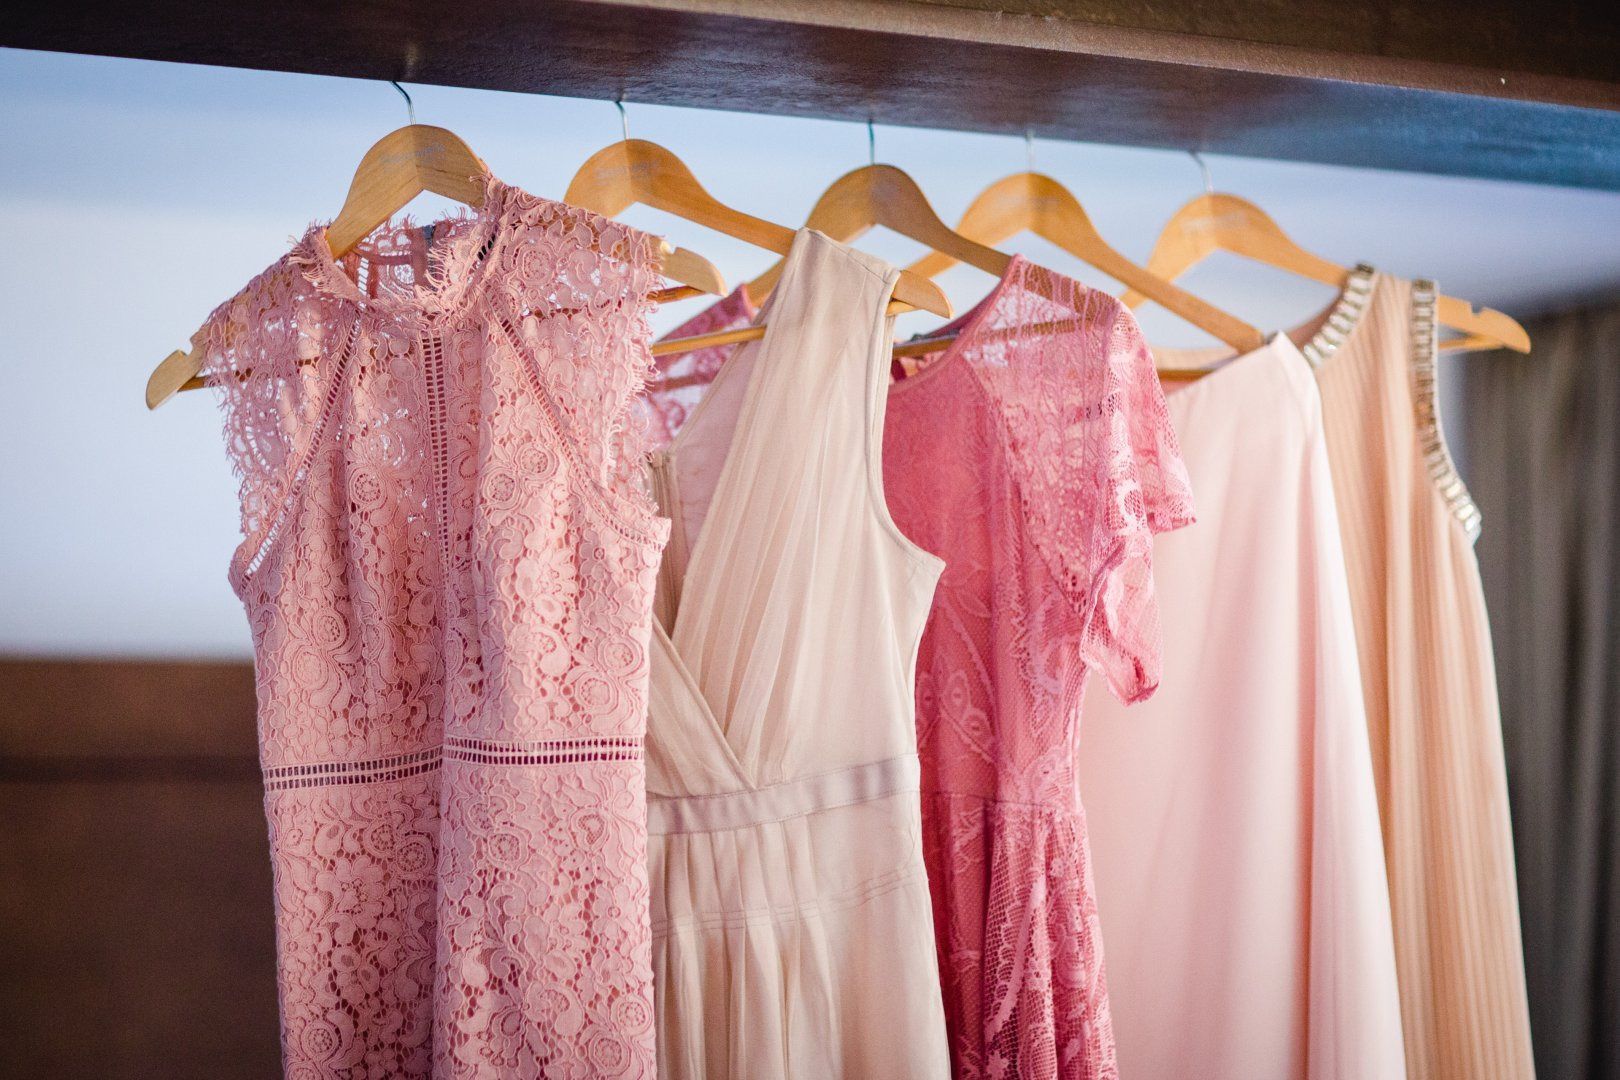 Clothing Clothes hanger Pink Dress Room Formal wear Peach Boutique Textile Curtain Vintage clothing Fashion design Pattern Interior design Nightwear Gown Robe Costume design